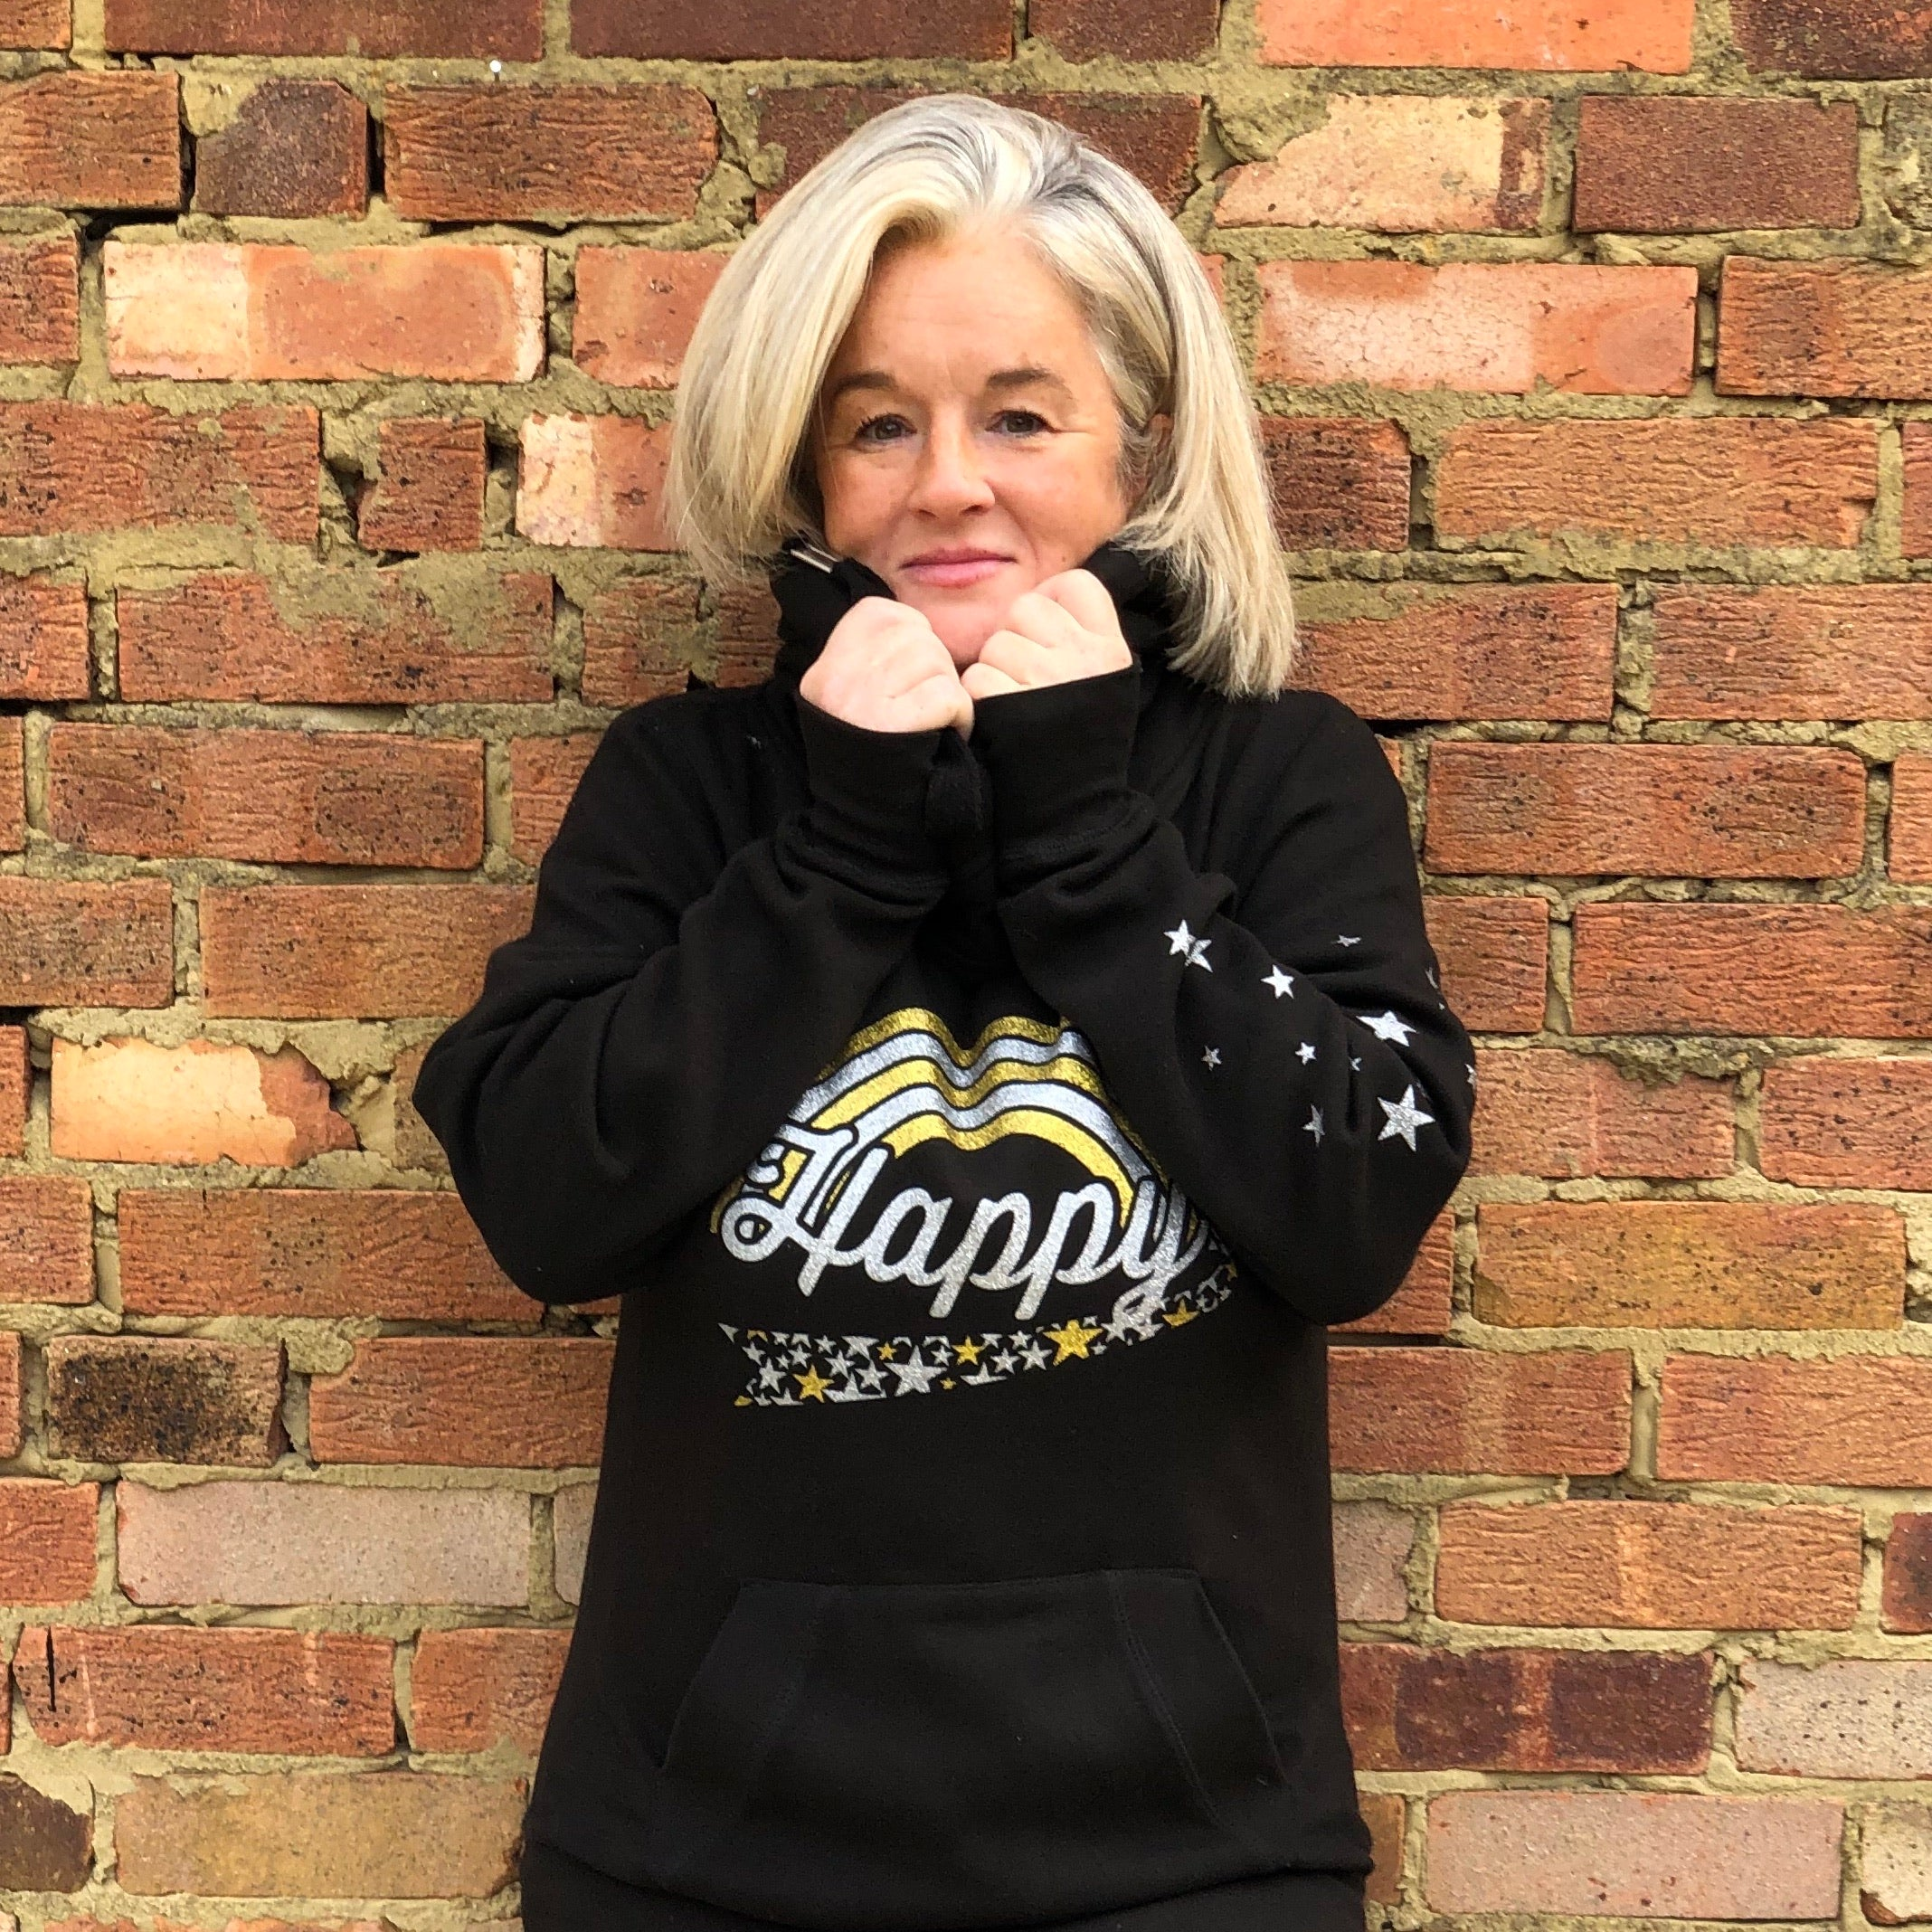 Limited Edition - HAPPY HOODIE - Gold / Silver Glitter